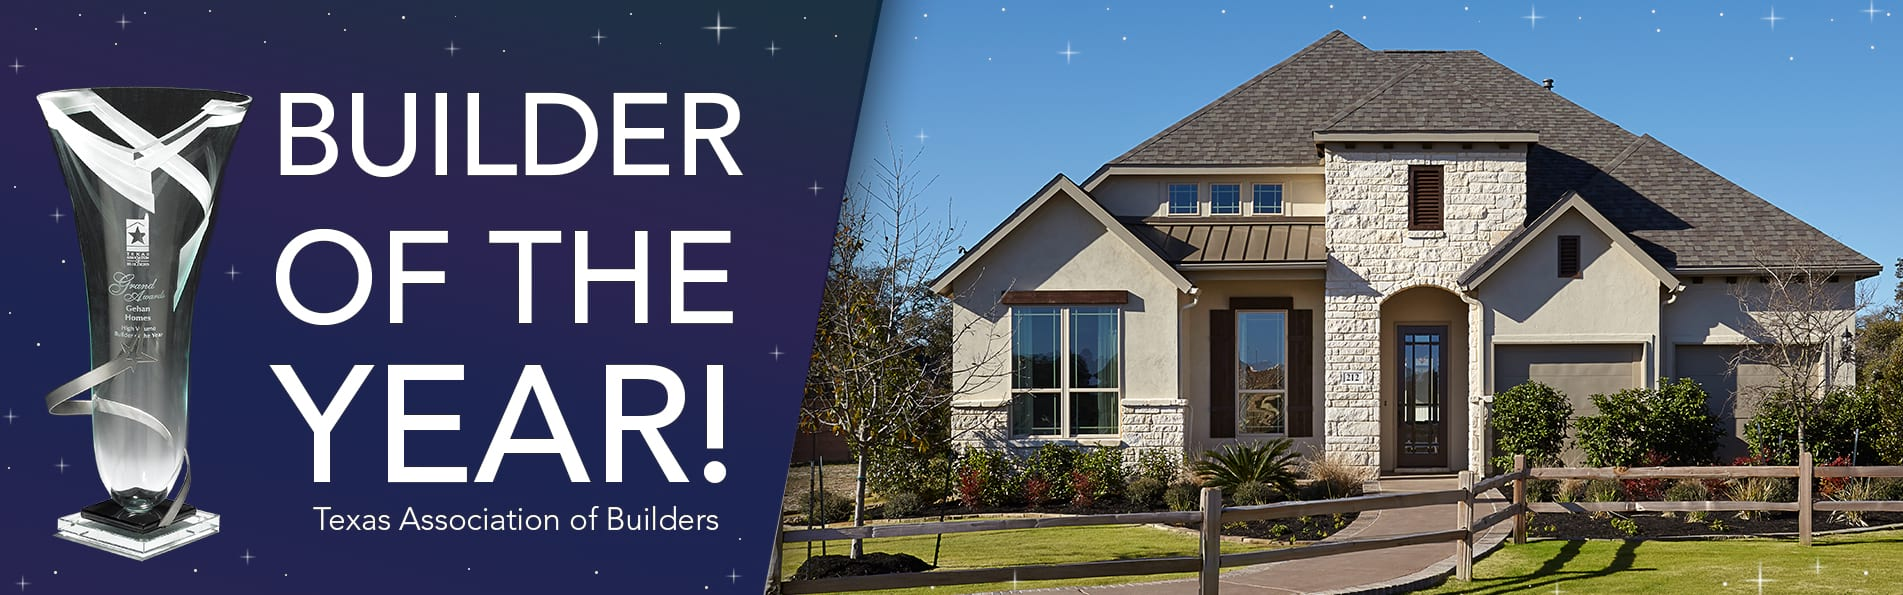 Gehan Homes 2017 Builder of the Year Award